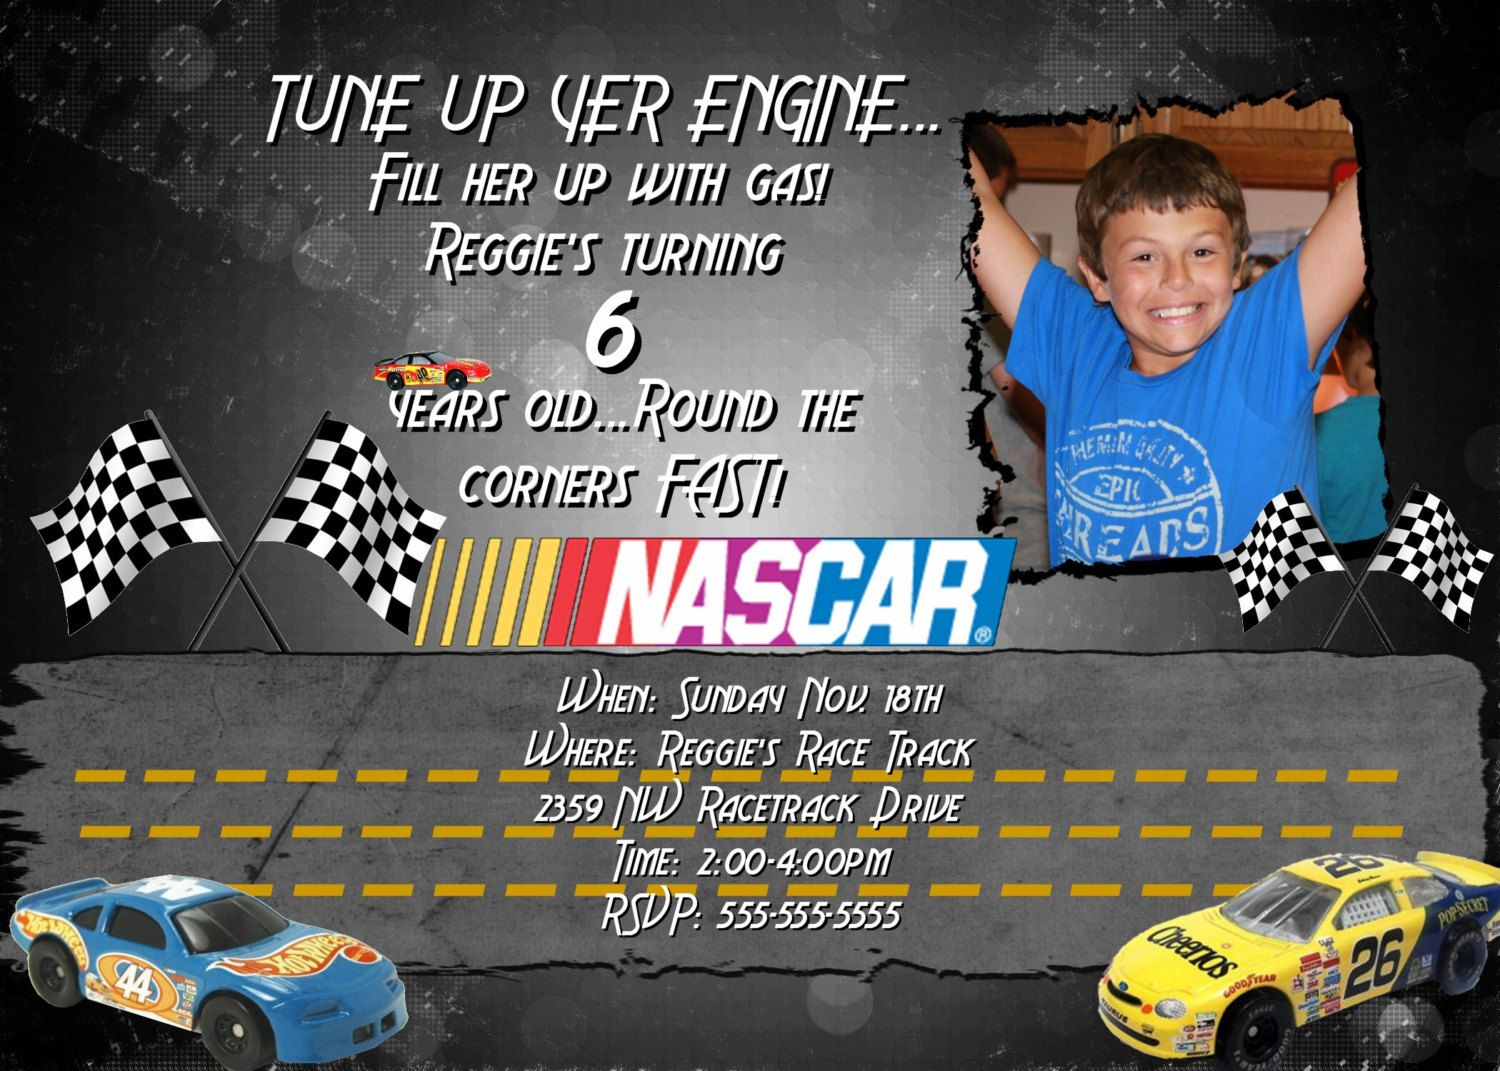 Nascar invitation birthday party card hot wheels design race cars nascar invitation birthday party card hot wheels design race cars boy boys racing 1498 filmwisefo Choice Image